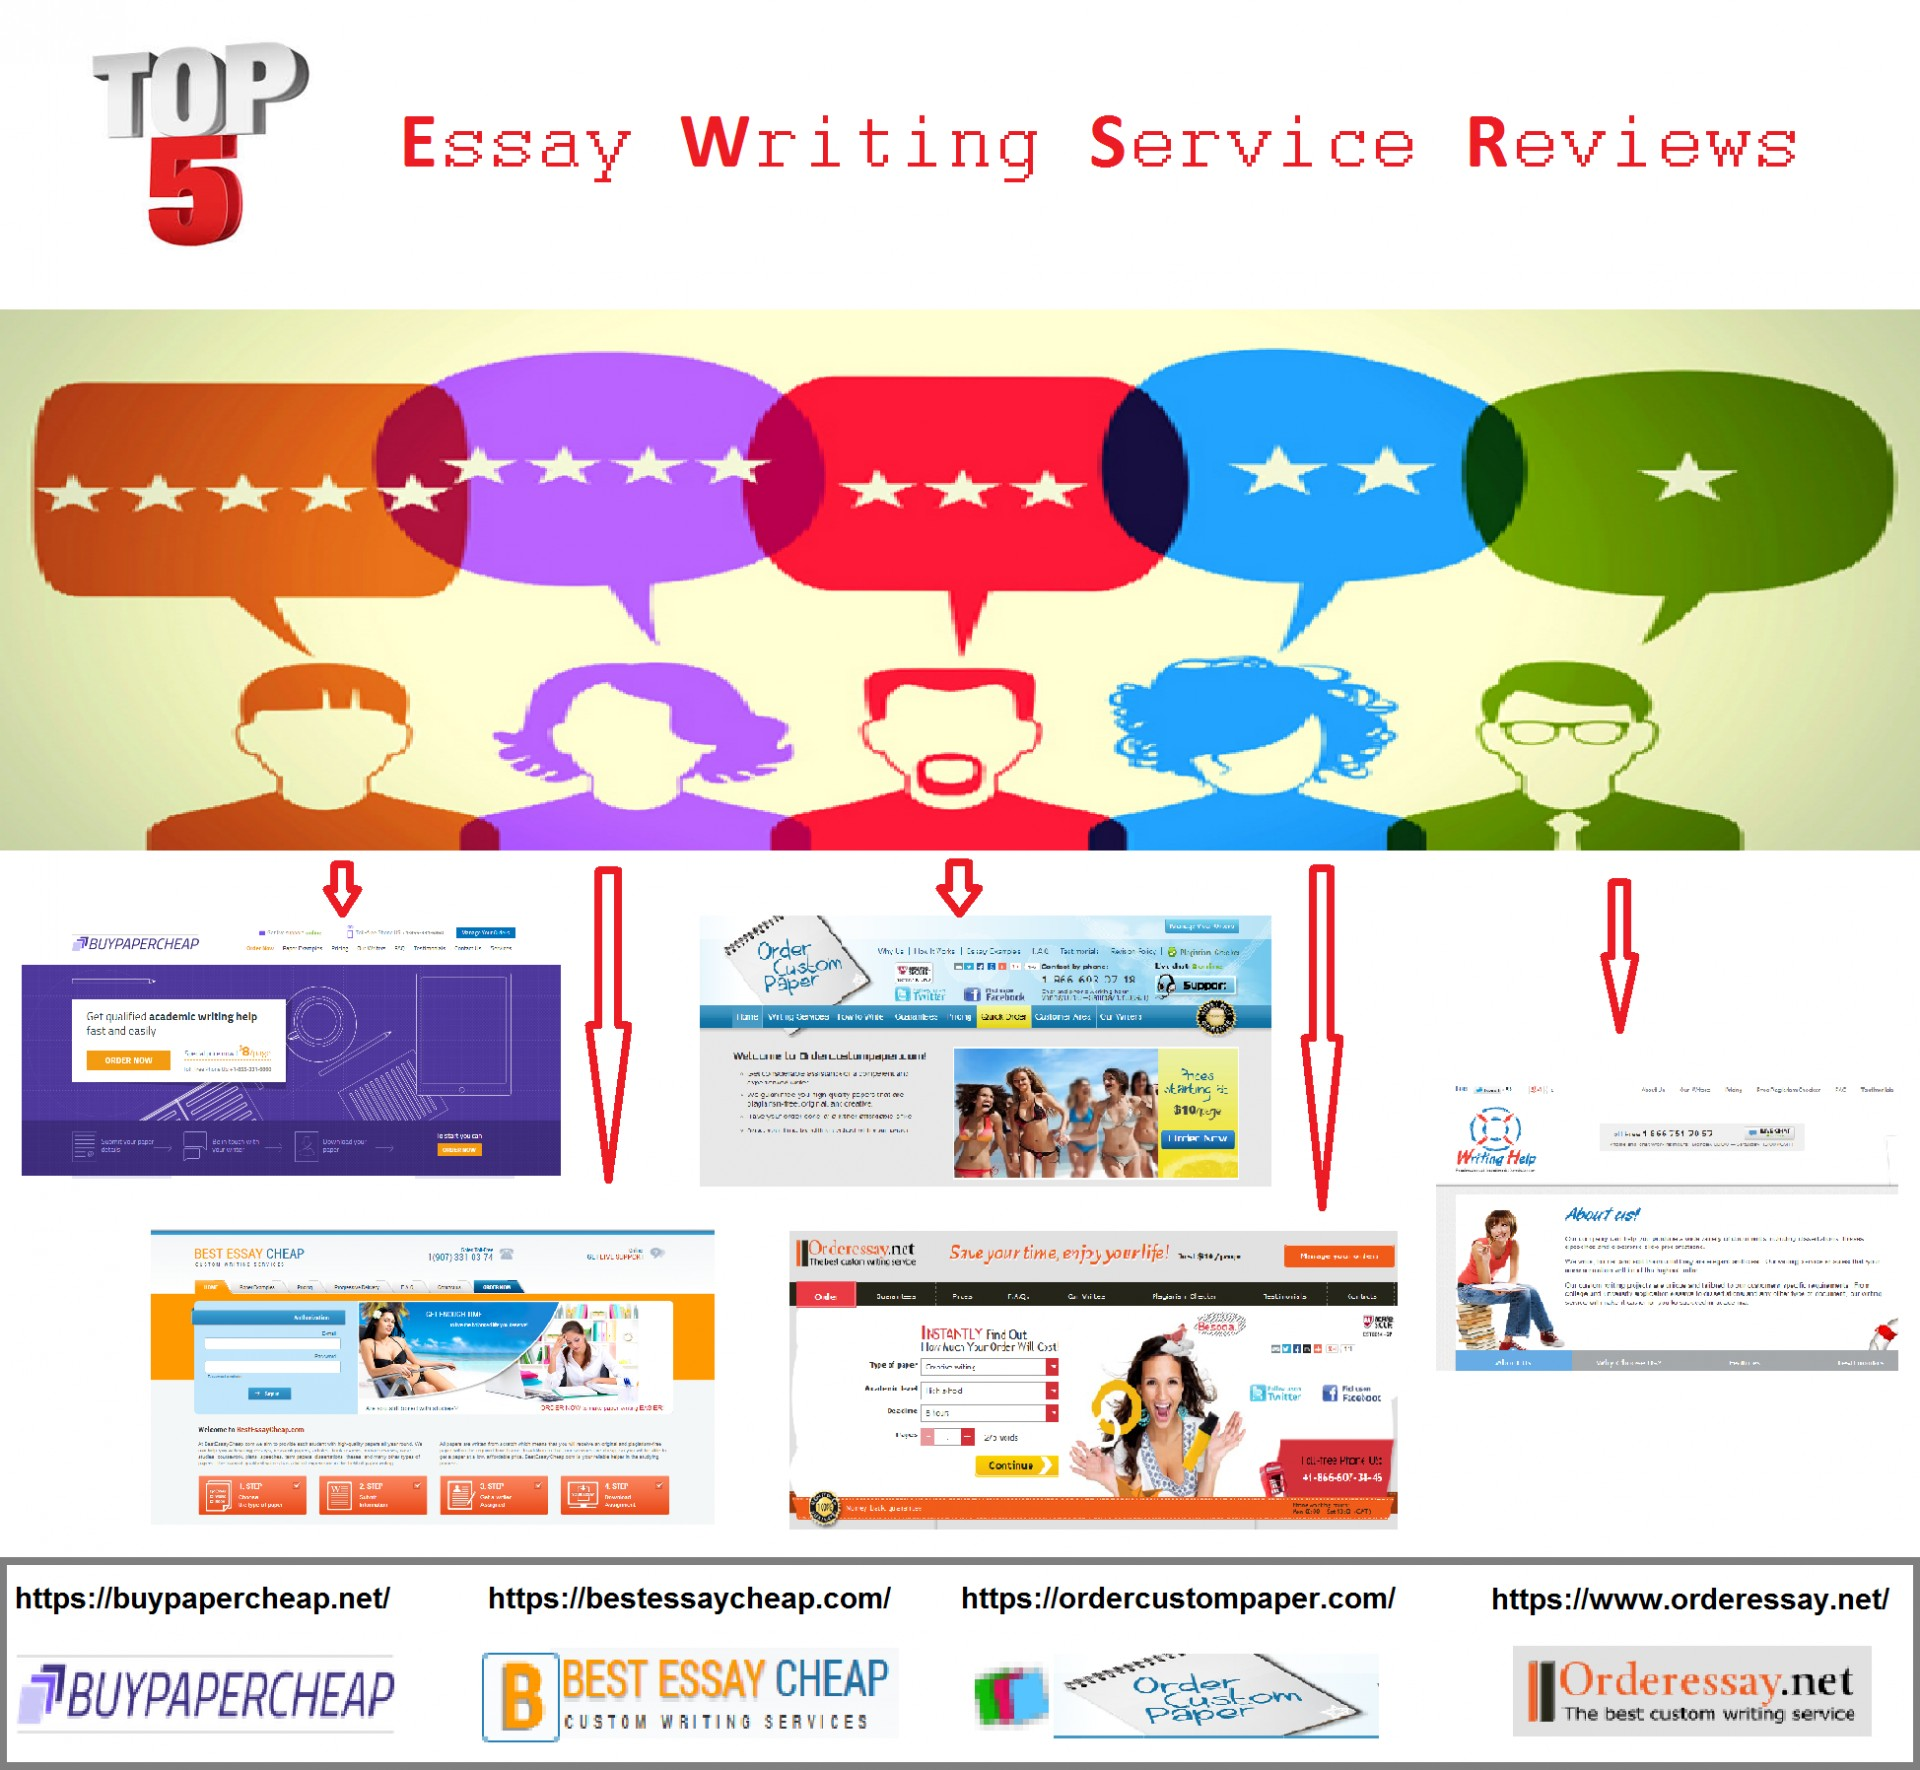 019 Essay Example Best Essays Review Homework Academic Writing Service Company Uk Ideas Of Services Reviews Sale Discount Brillian To Work For Impressive Help 1920